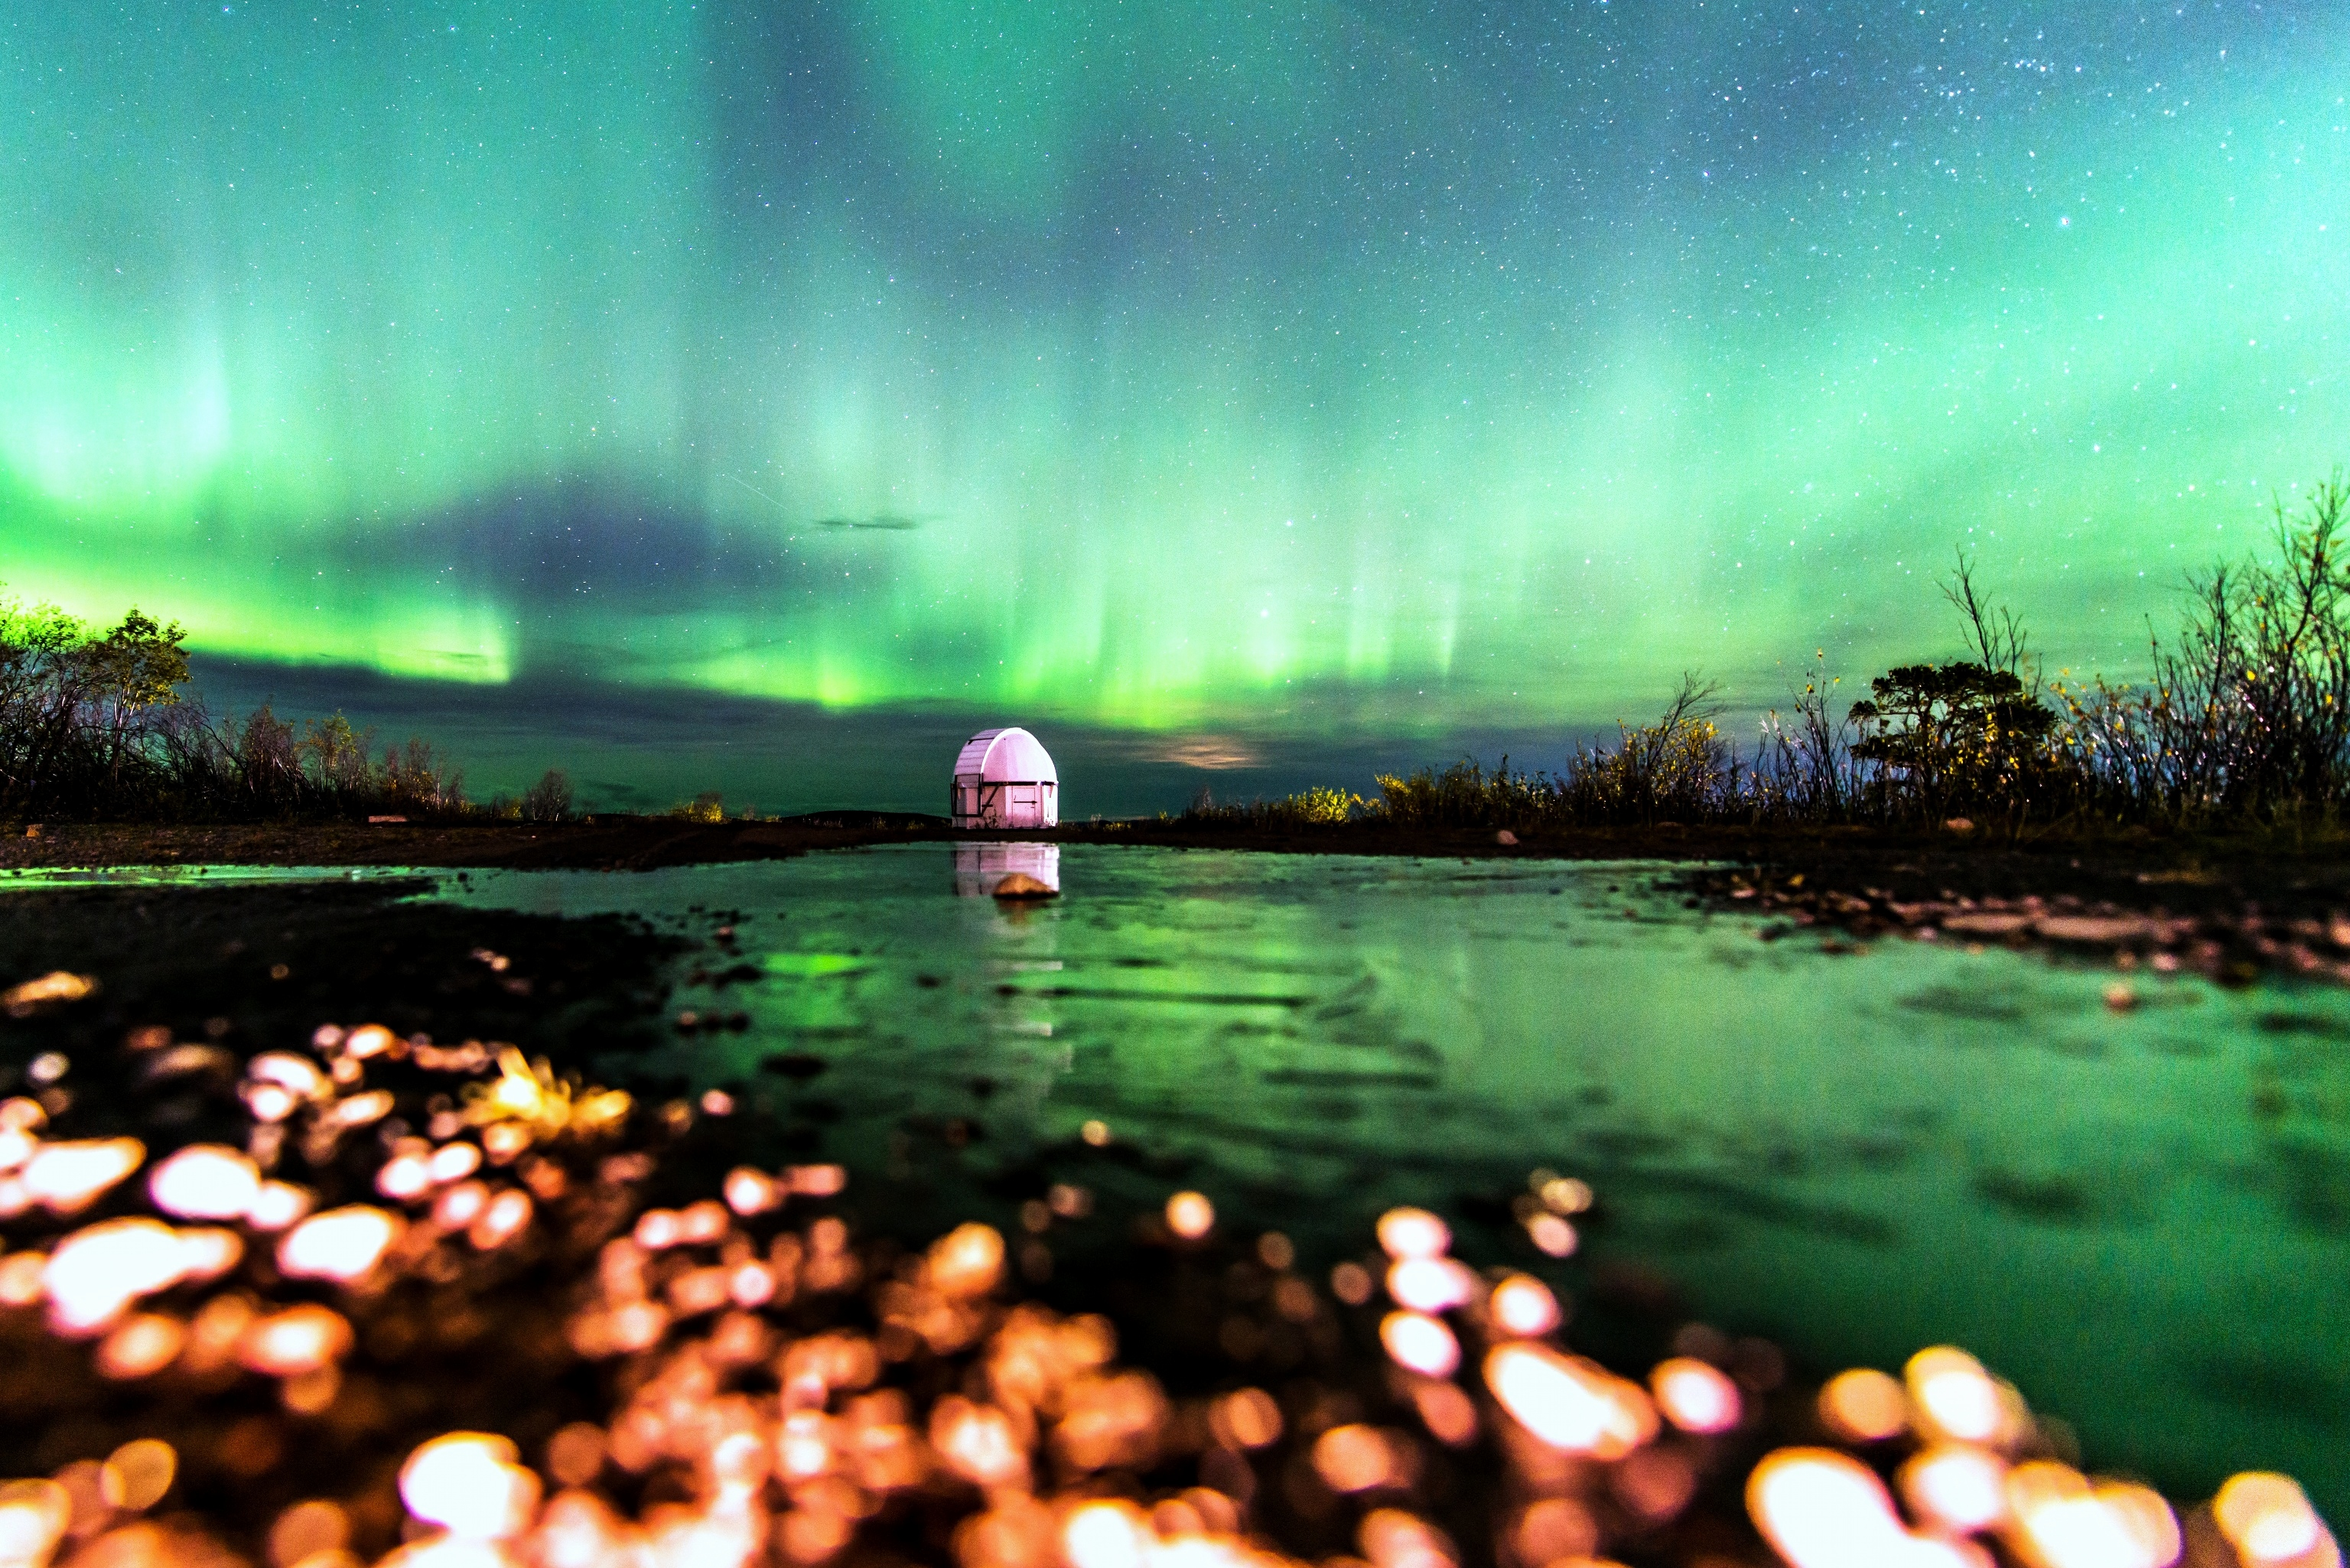 Engel Bilder Lustig Inspirierend astronomy Picture Of the Day